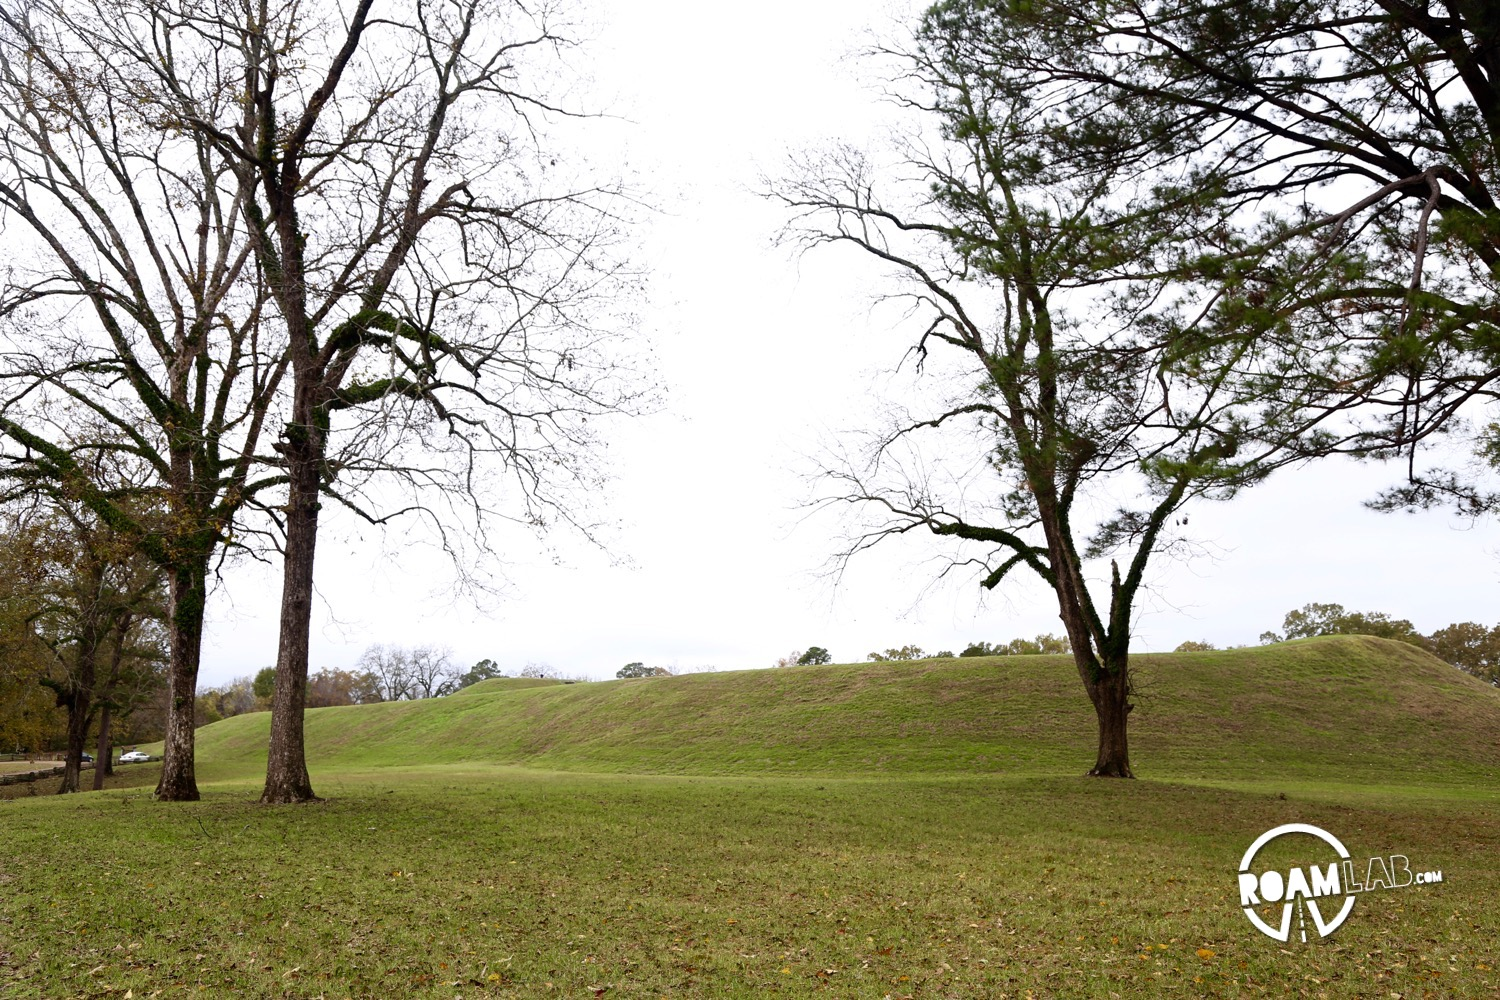 Many mounds dot the Natchez Trace, constructed by ancient stone age tribes. But none compare the the sheer size of the Emerald Mound.